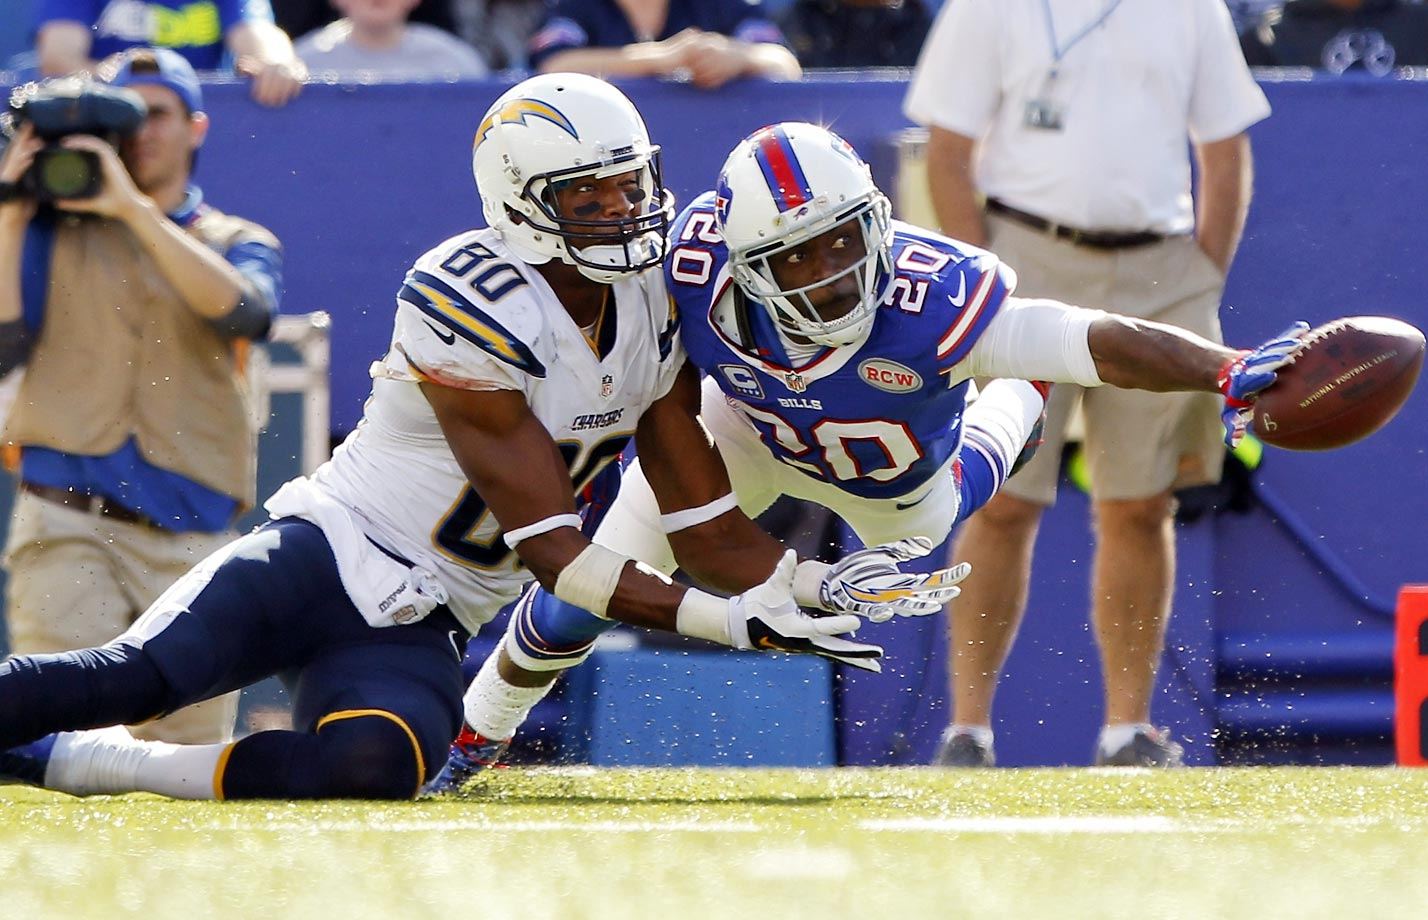 Bills cornerback Corey Graham deflects a pass to San Diego Chargers' Malcom Floyd.